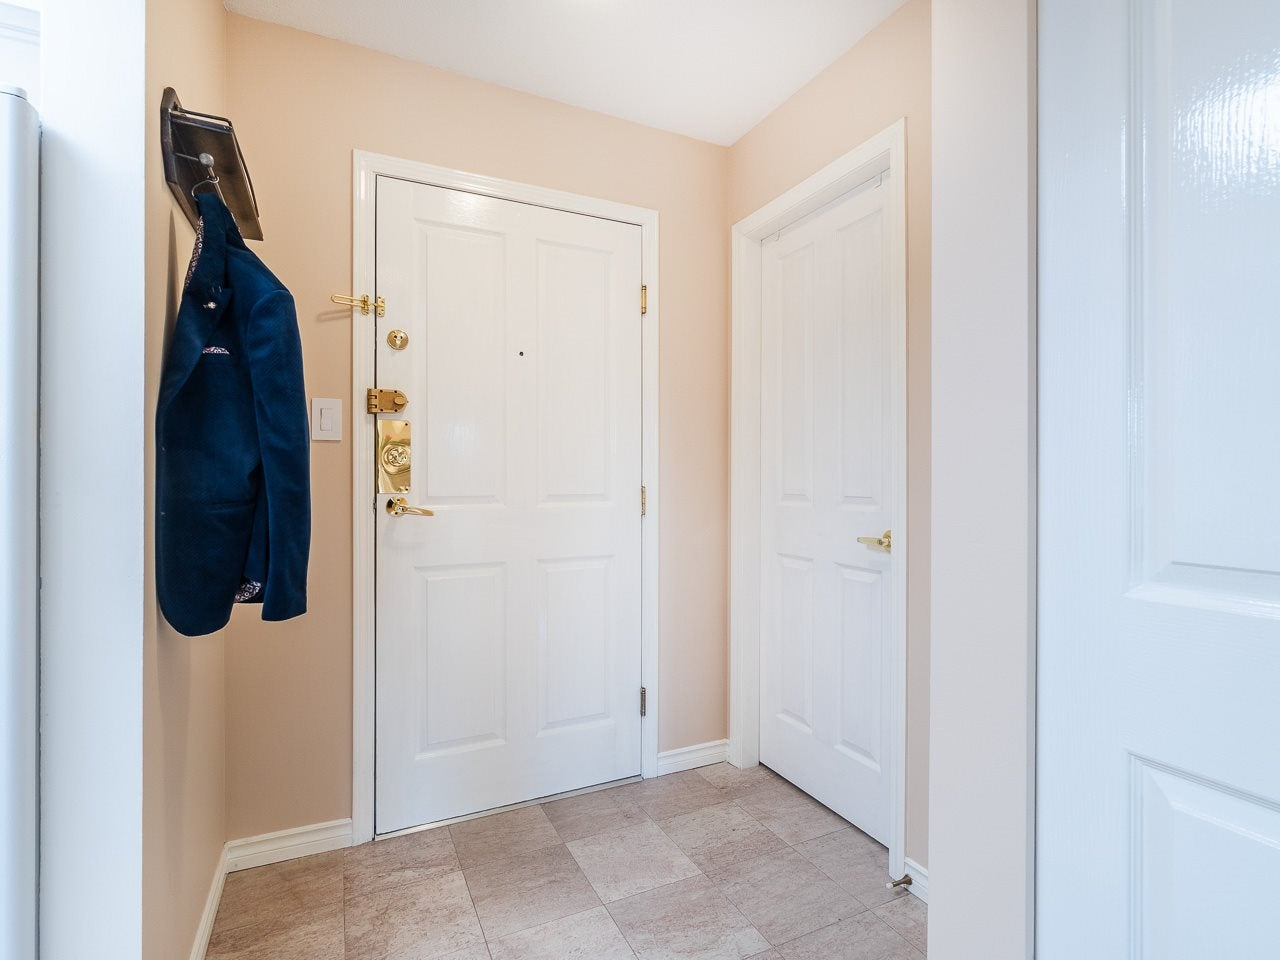 306 2105 W 42ND AVENUE - Kerrisdale Apartment/Condo for sale, 1 Bedroom (R2511504) - #19